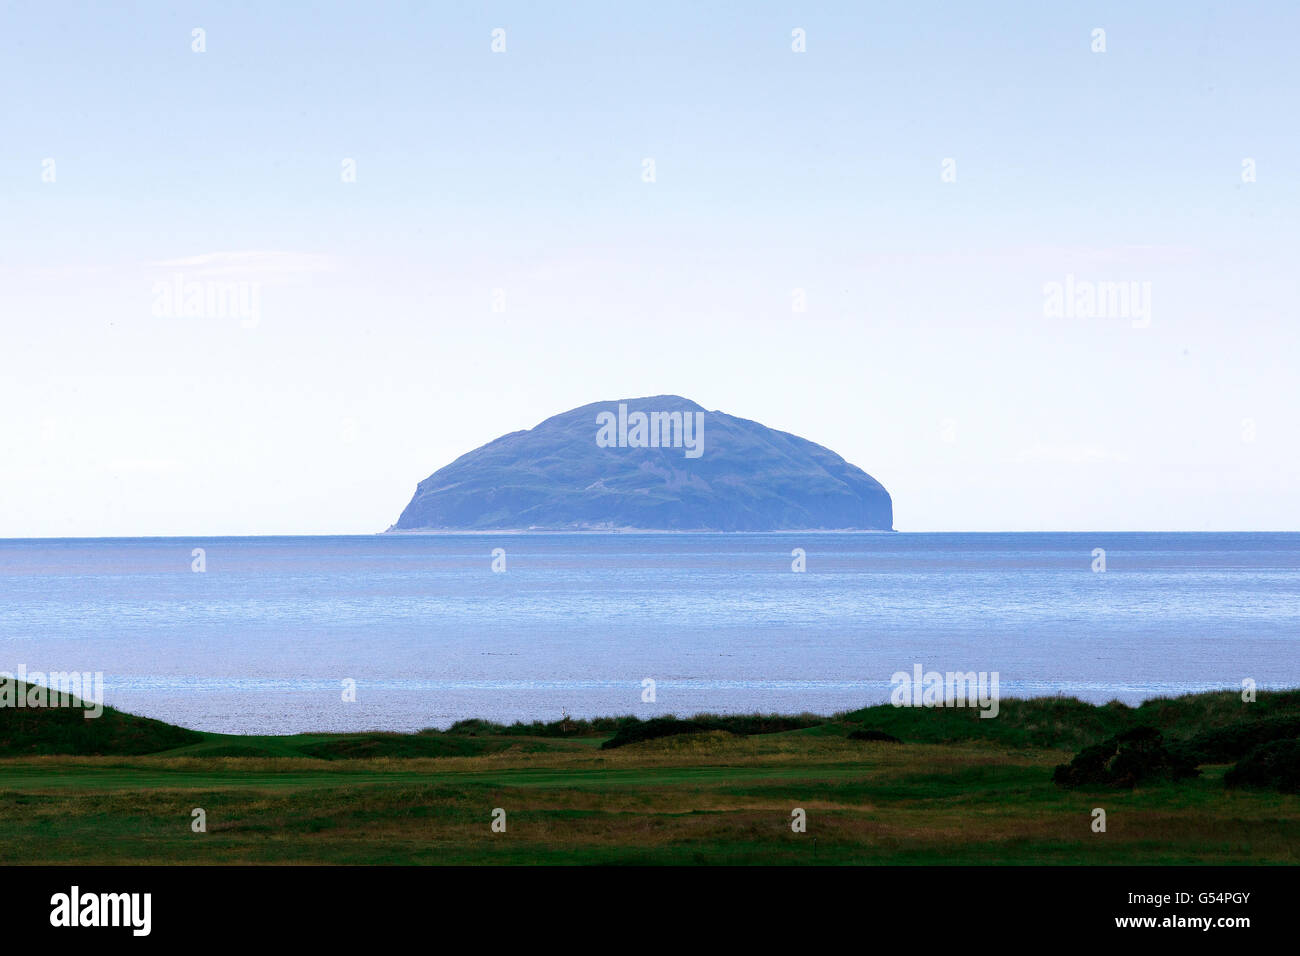 ailsa craig island as seen from trump turnberry a luxury